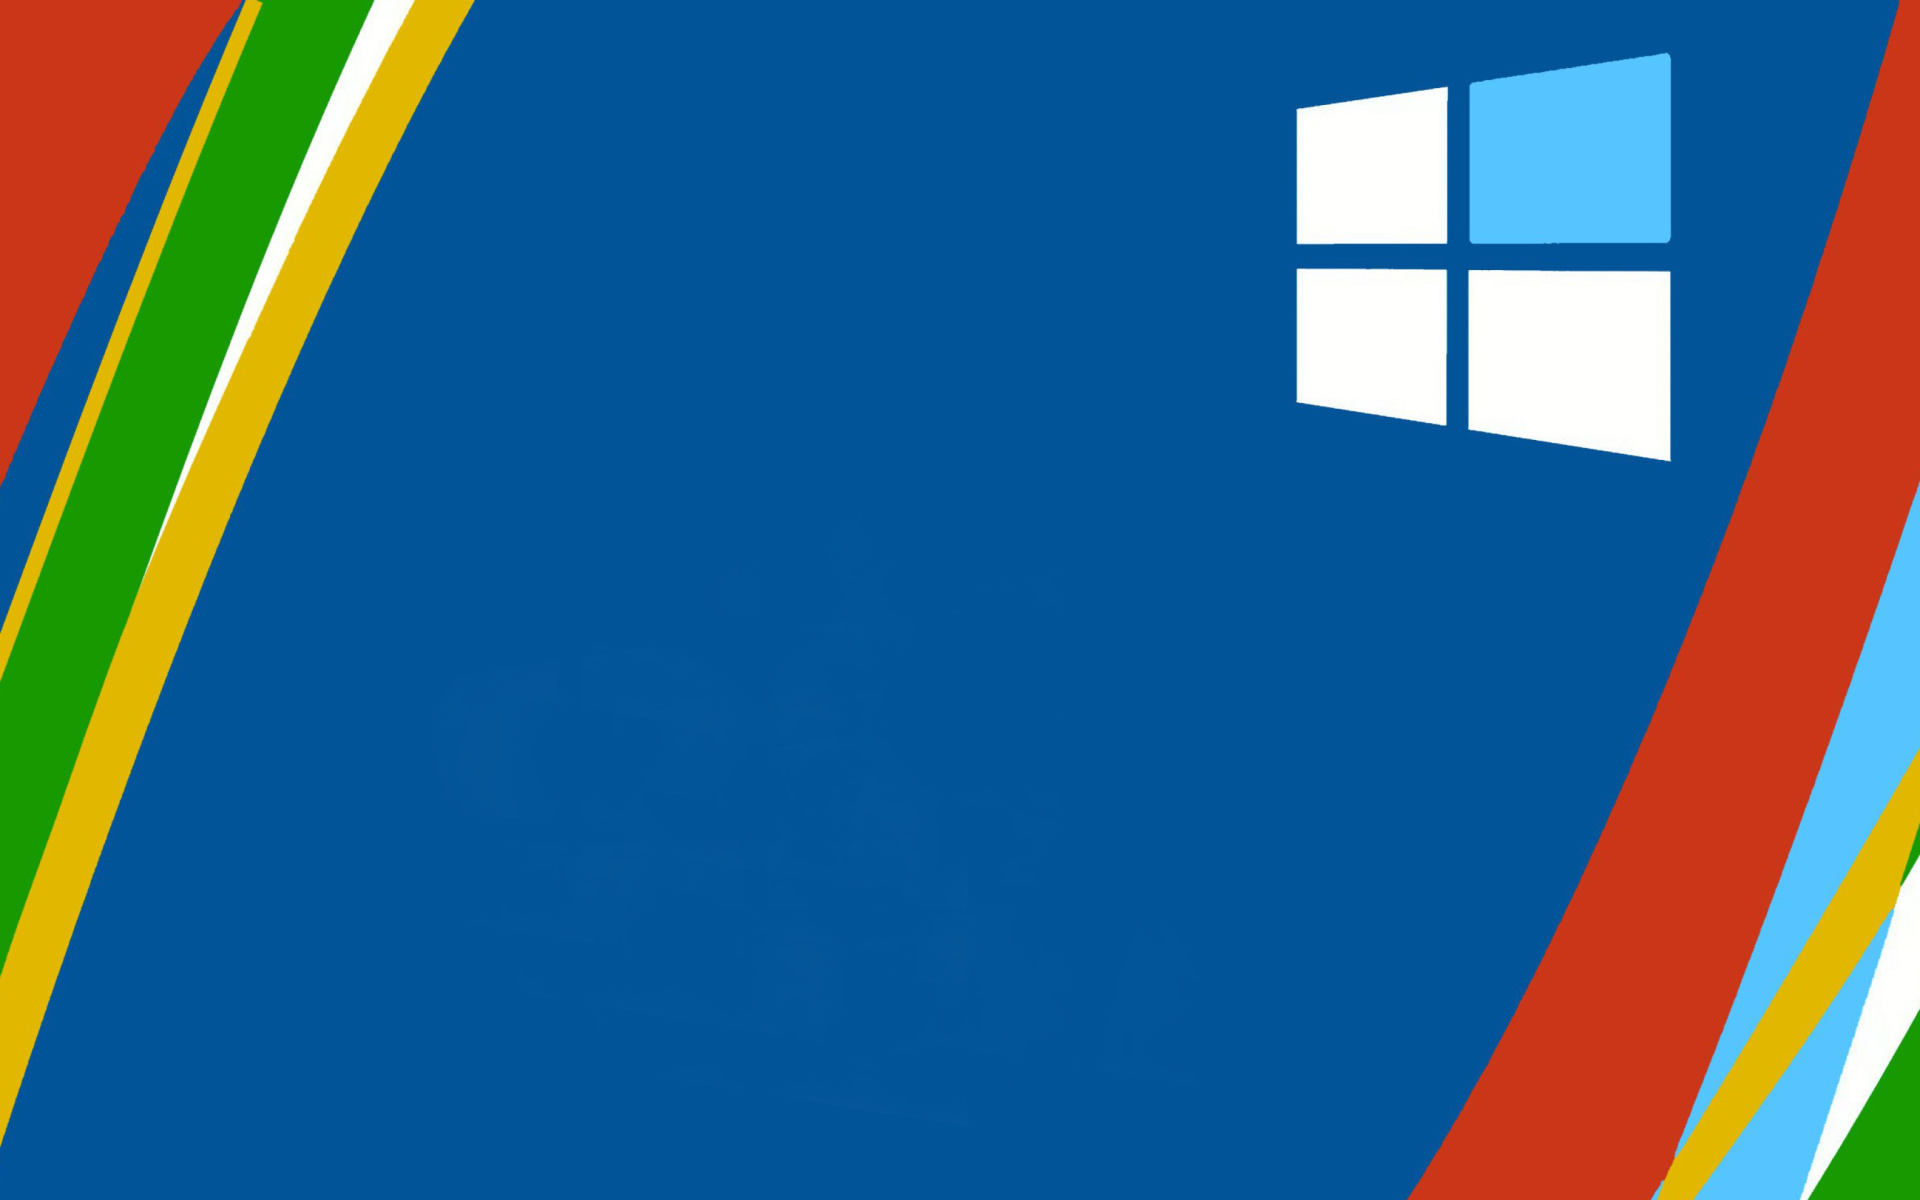 Windows 10 Hd Personalization Papel De Parede Para Celular